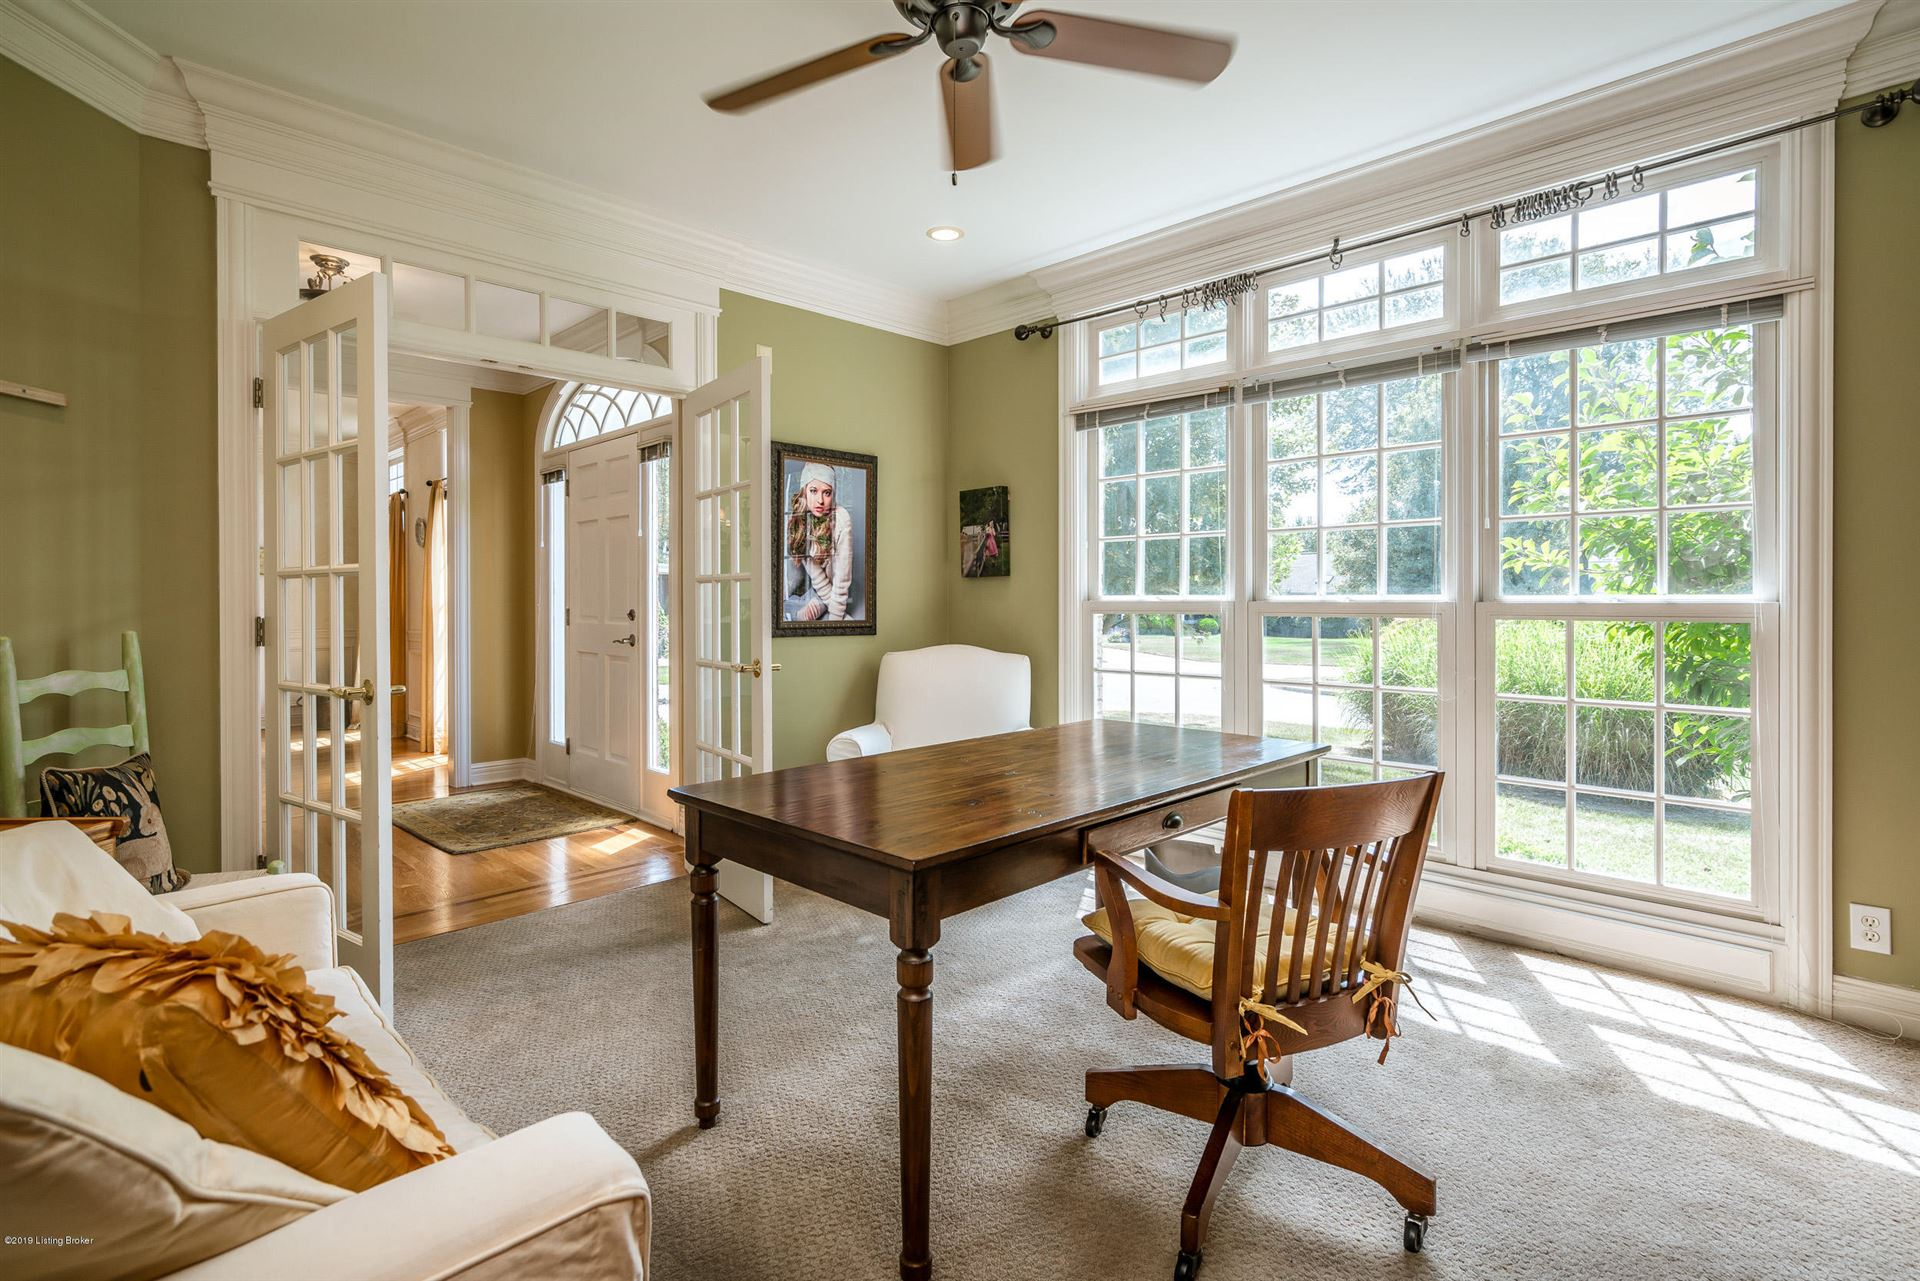 Property Image Of 3210 Deer Pointe Pl In Prospect, Ky